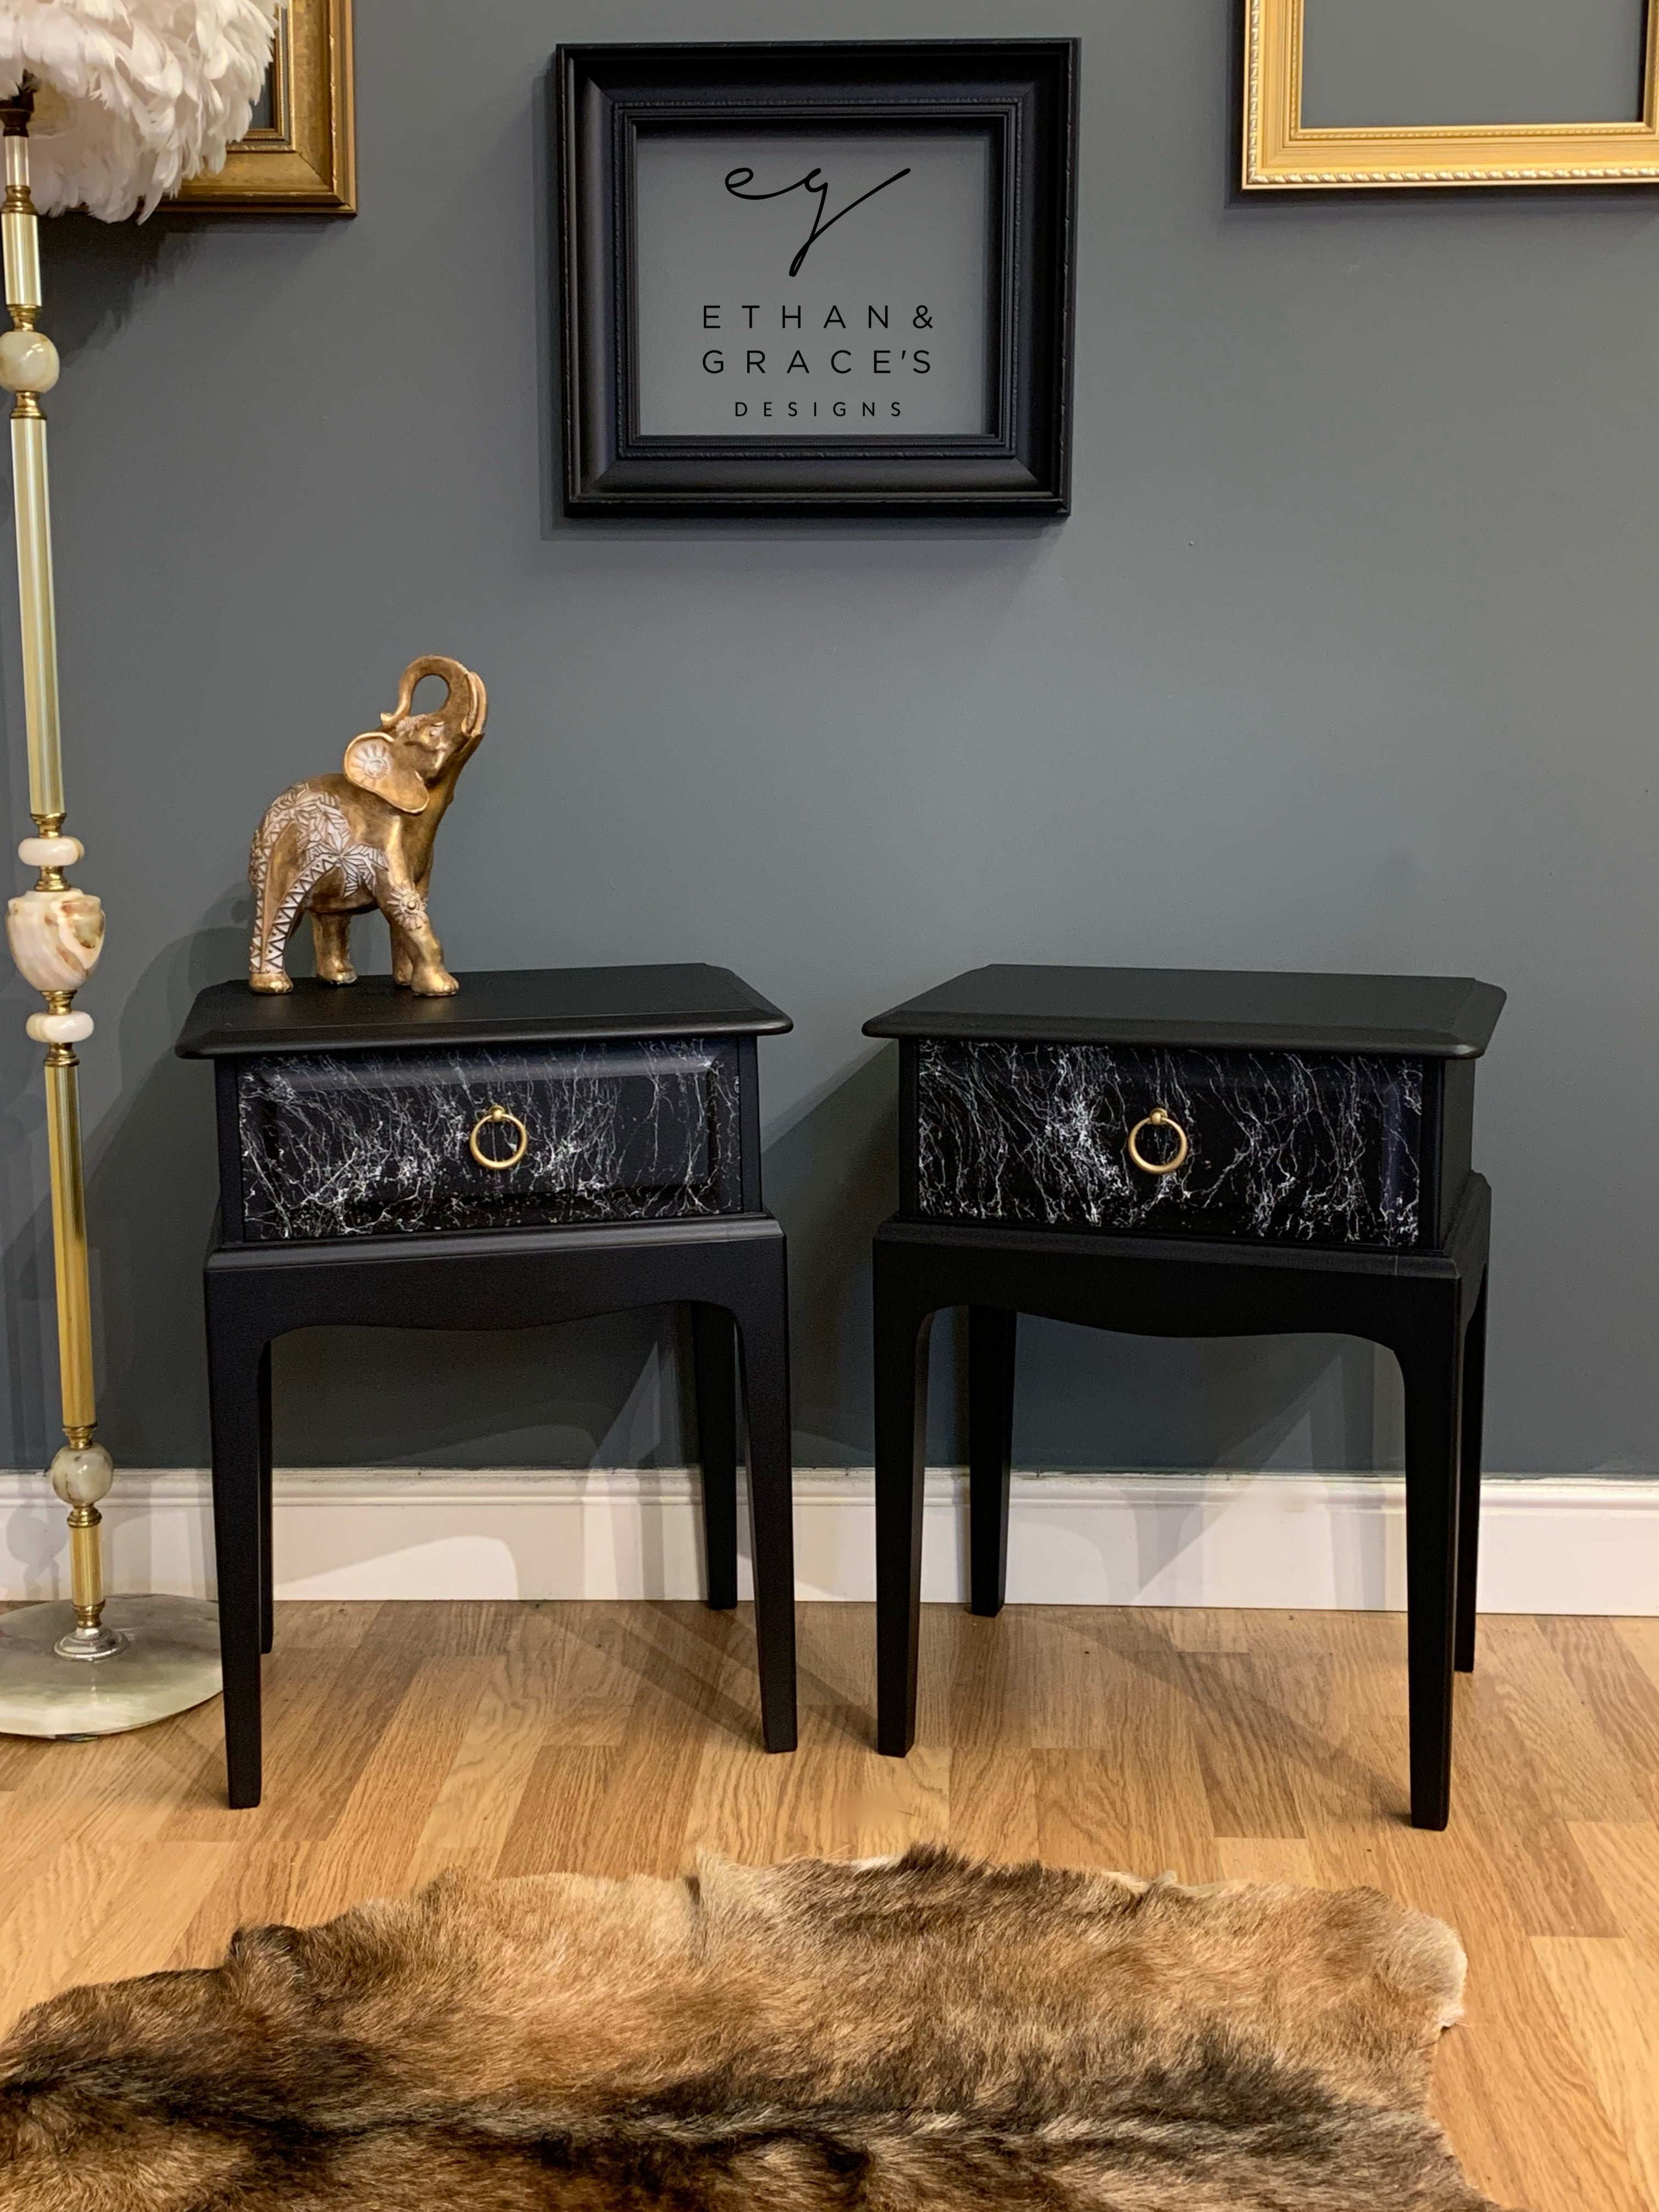 Stag Bedside Side Tables Black Gold Marble Ethan And Grace S Designs